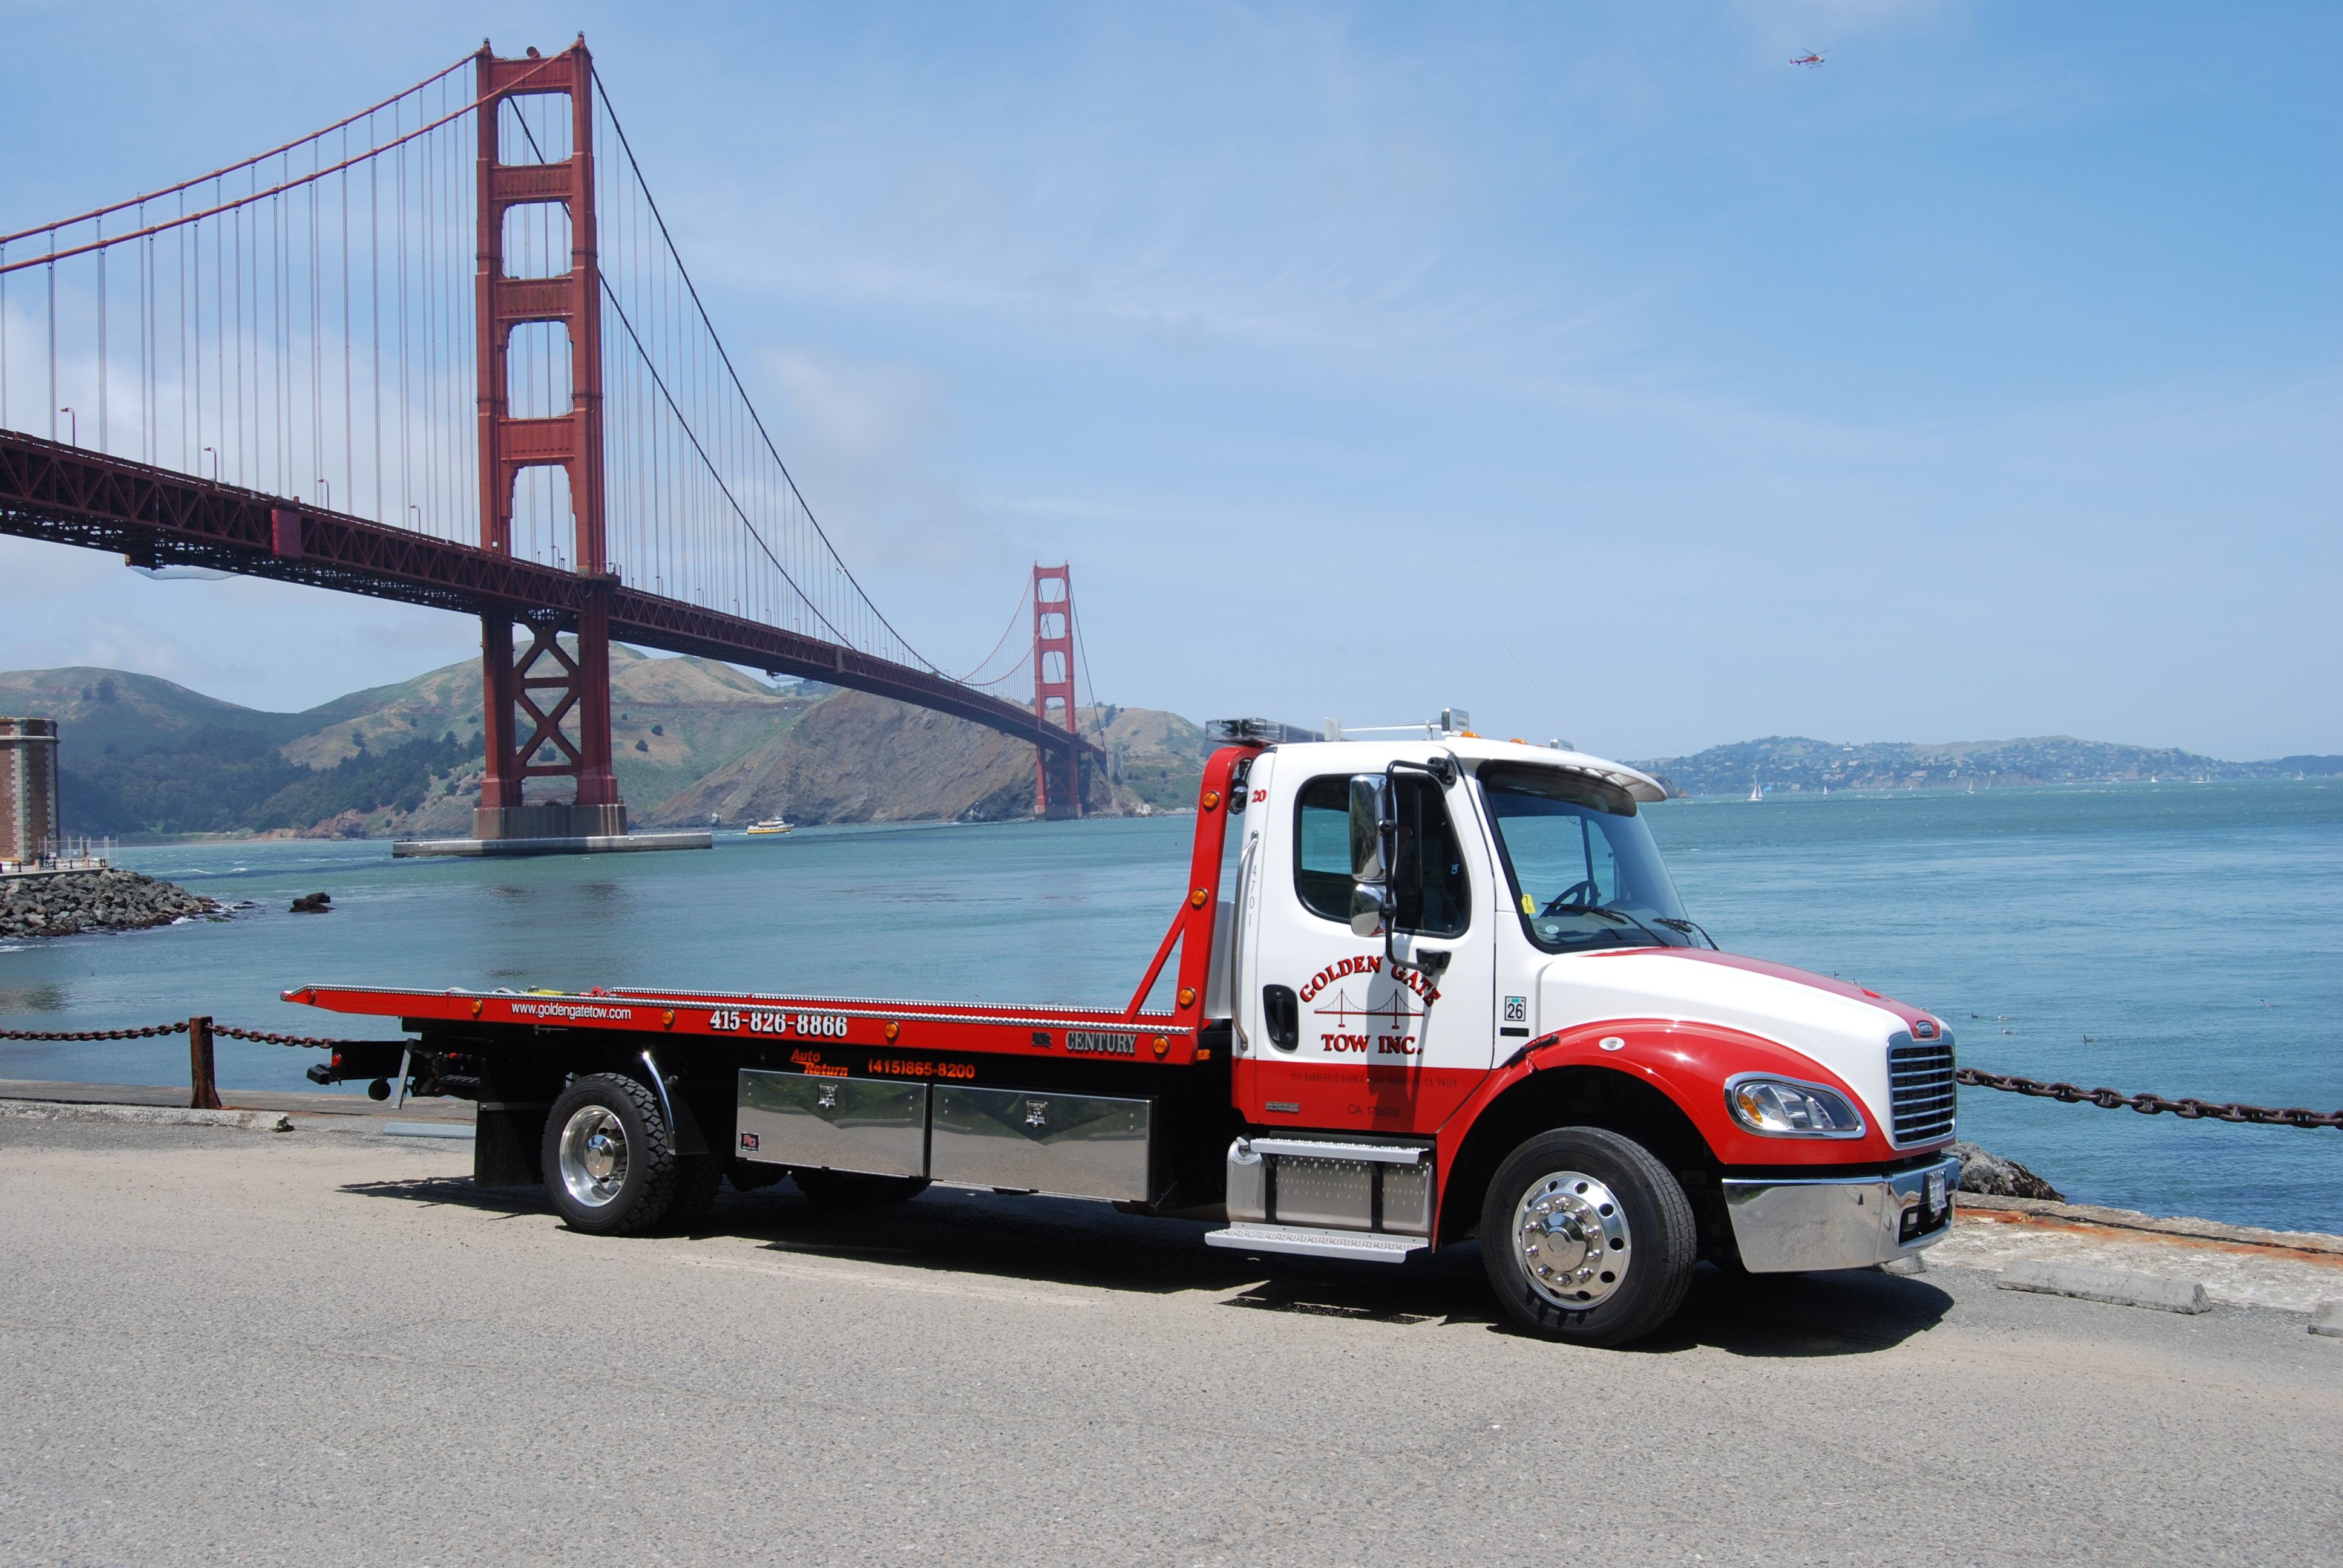 Golden Gate Tow Inc. image 28